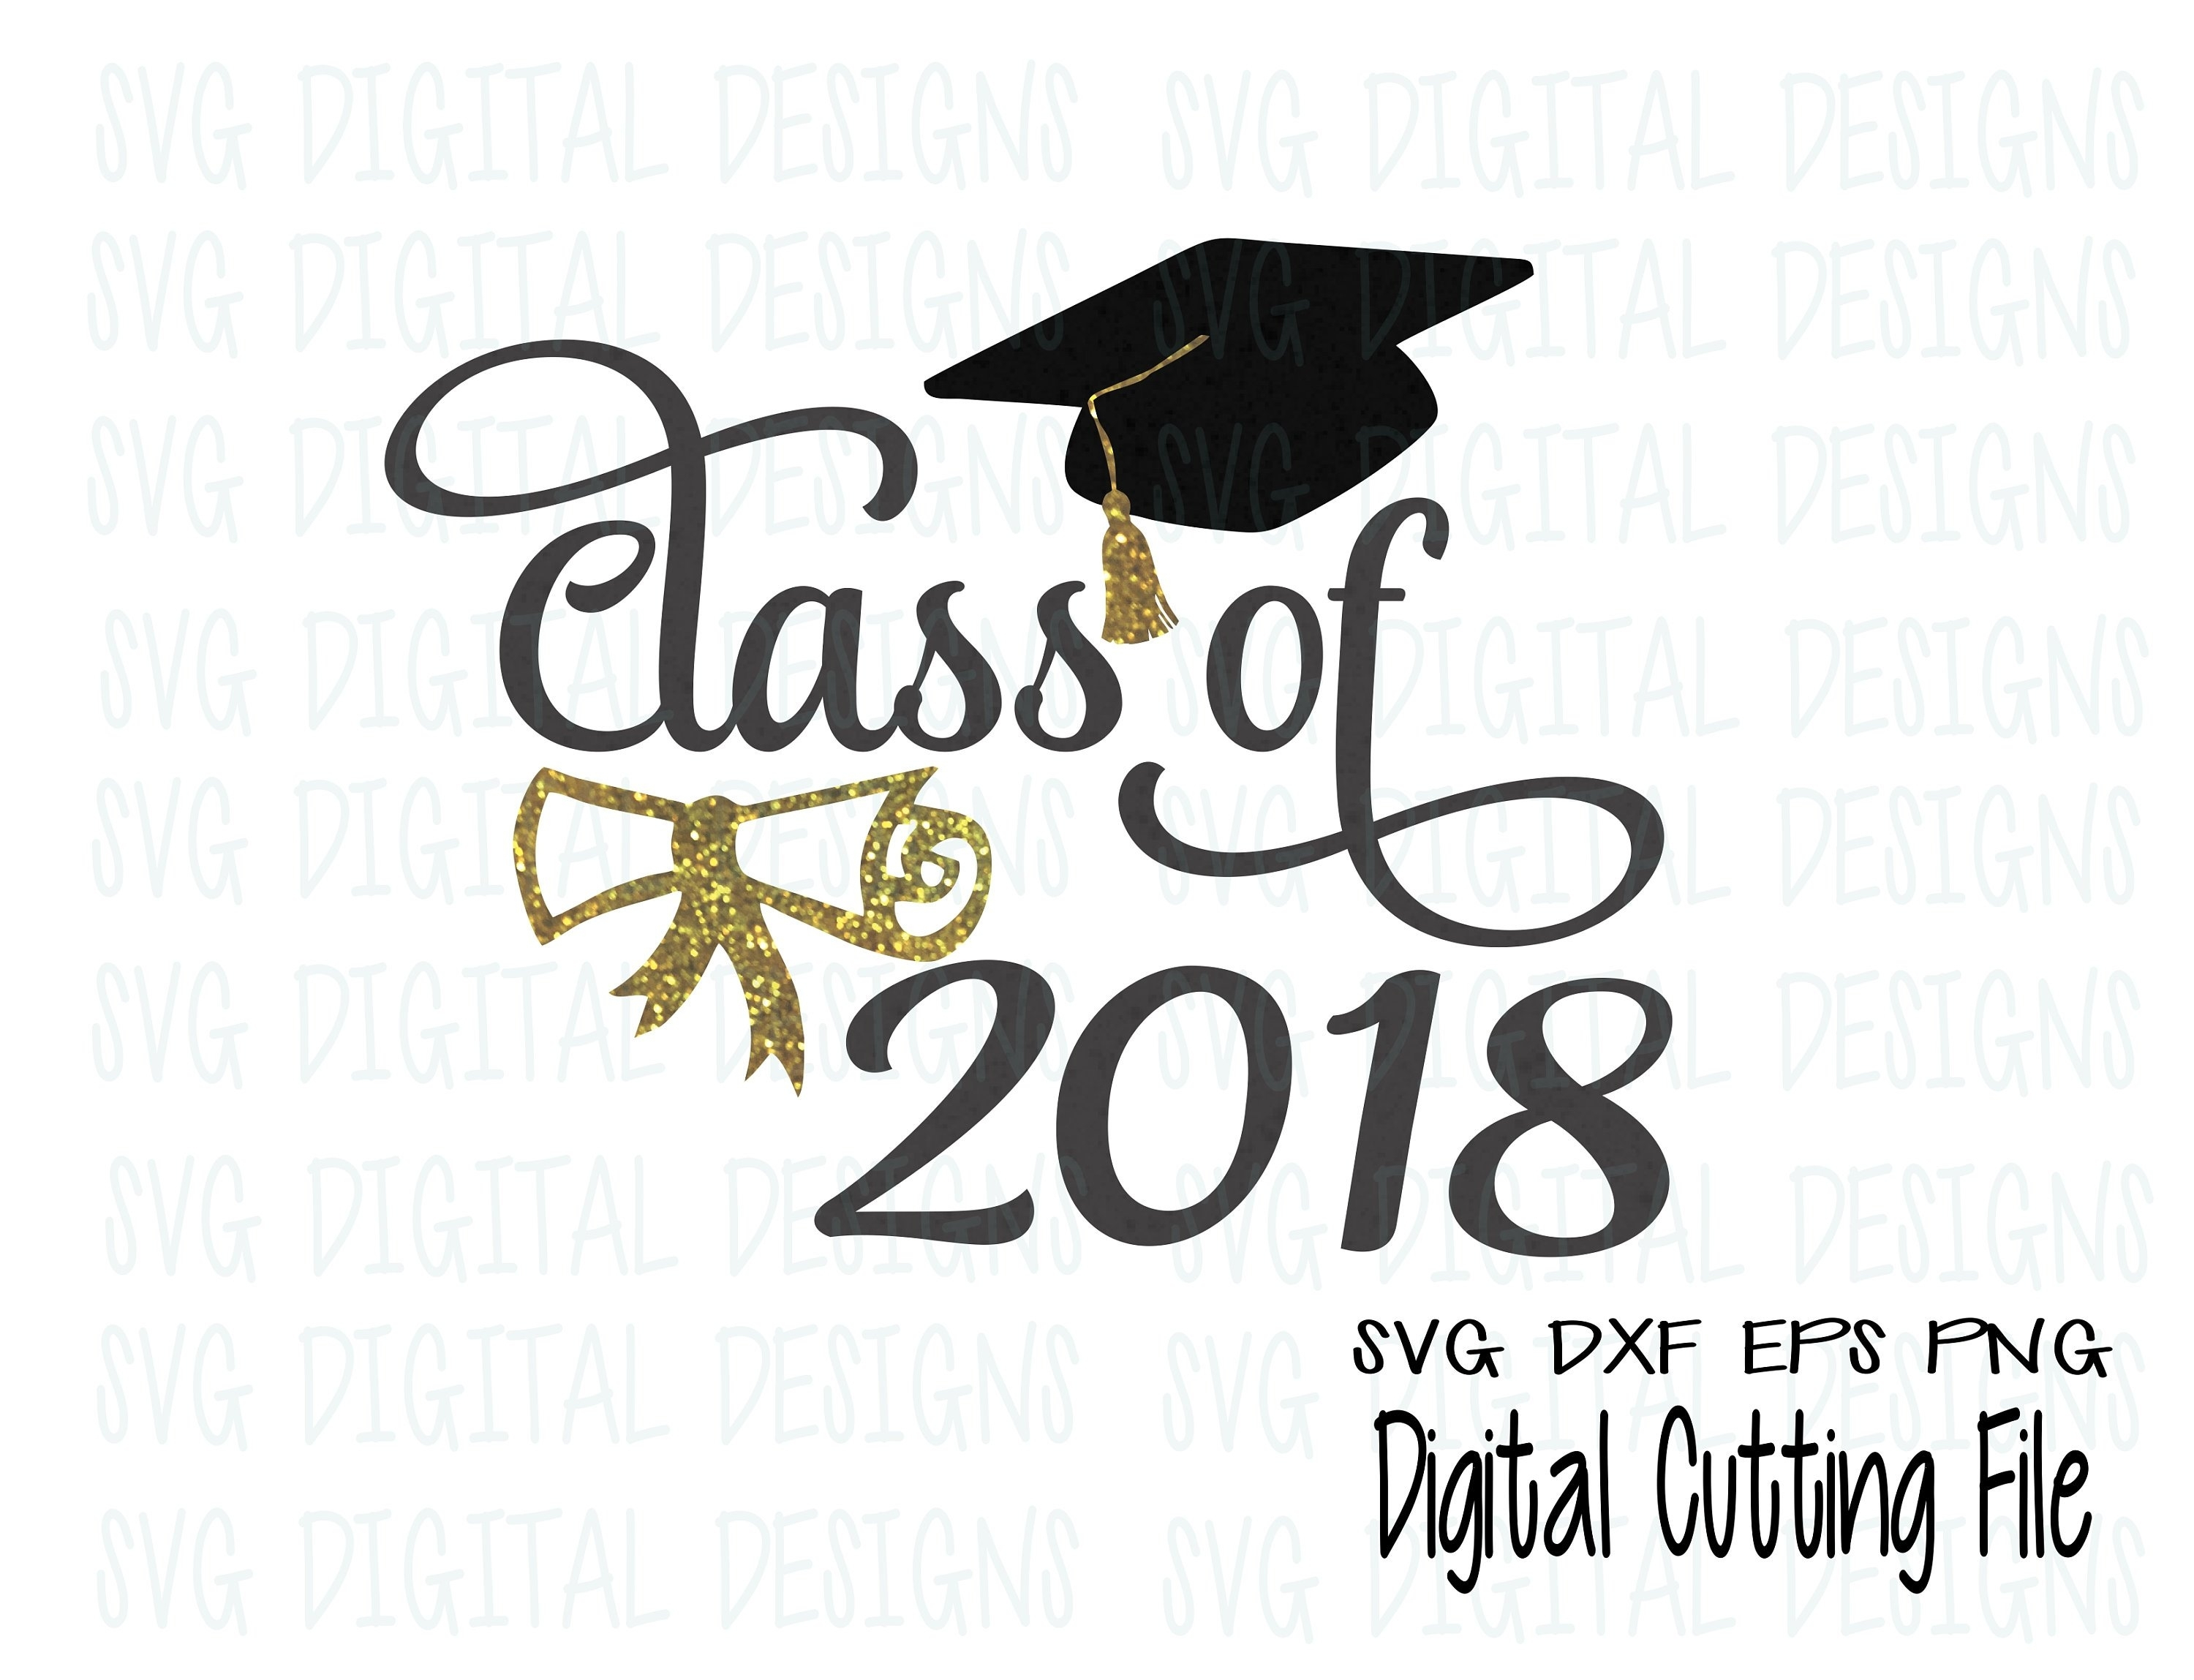 2018 clipart graduation cap. Cover letter sample for